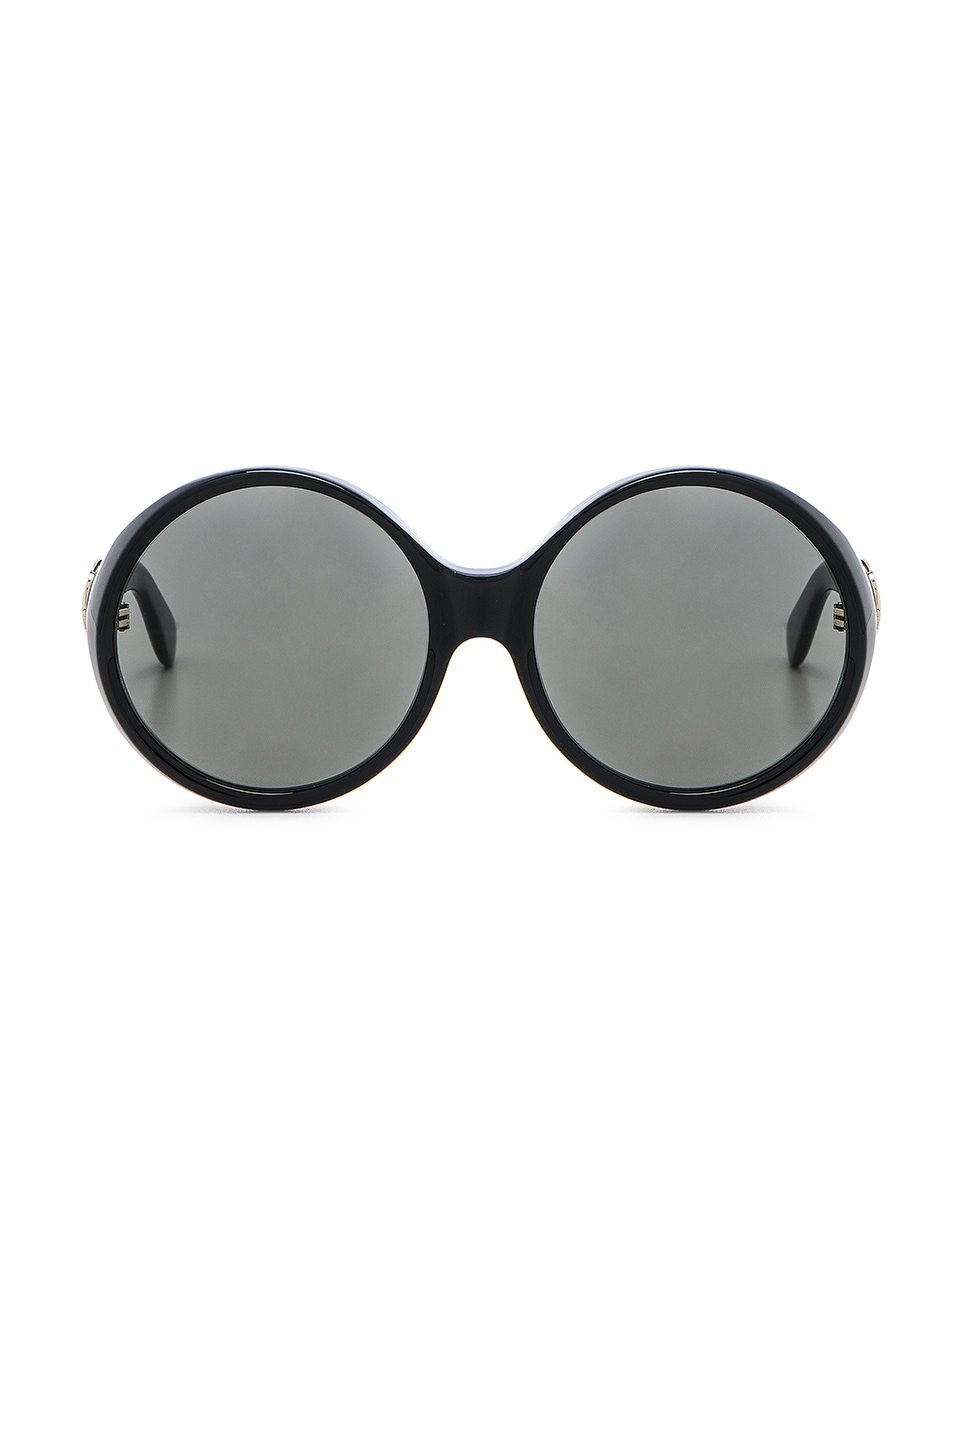 Image 1 of Saint Laurent SL M1 Sunglasses in Black